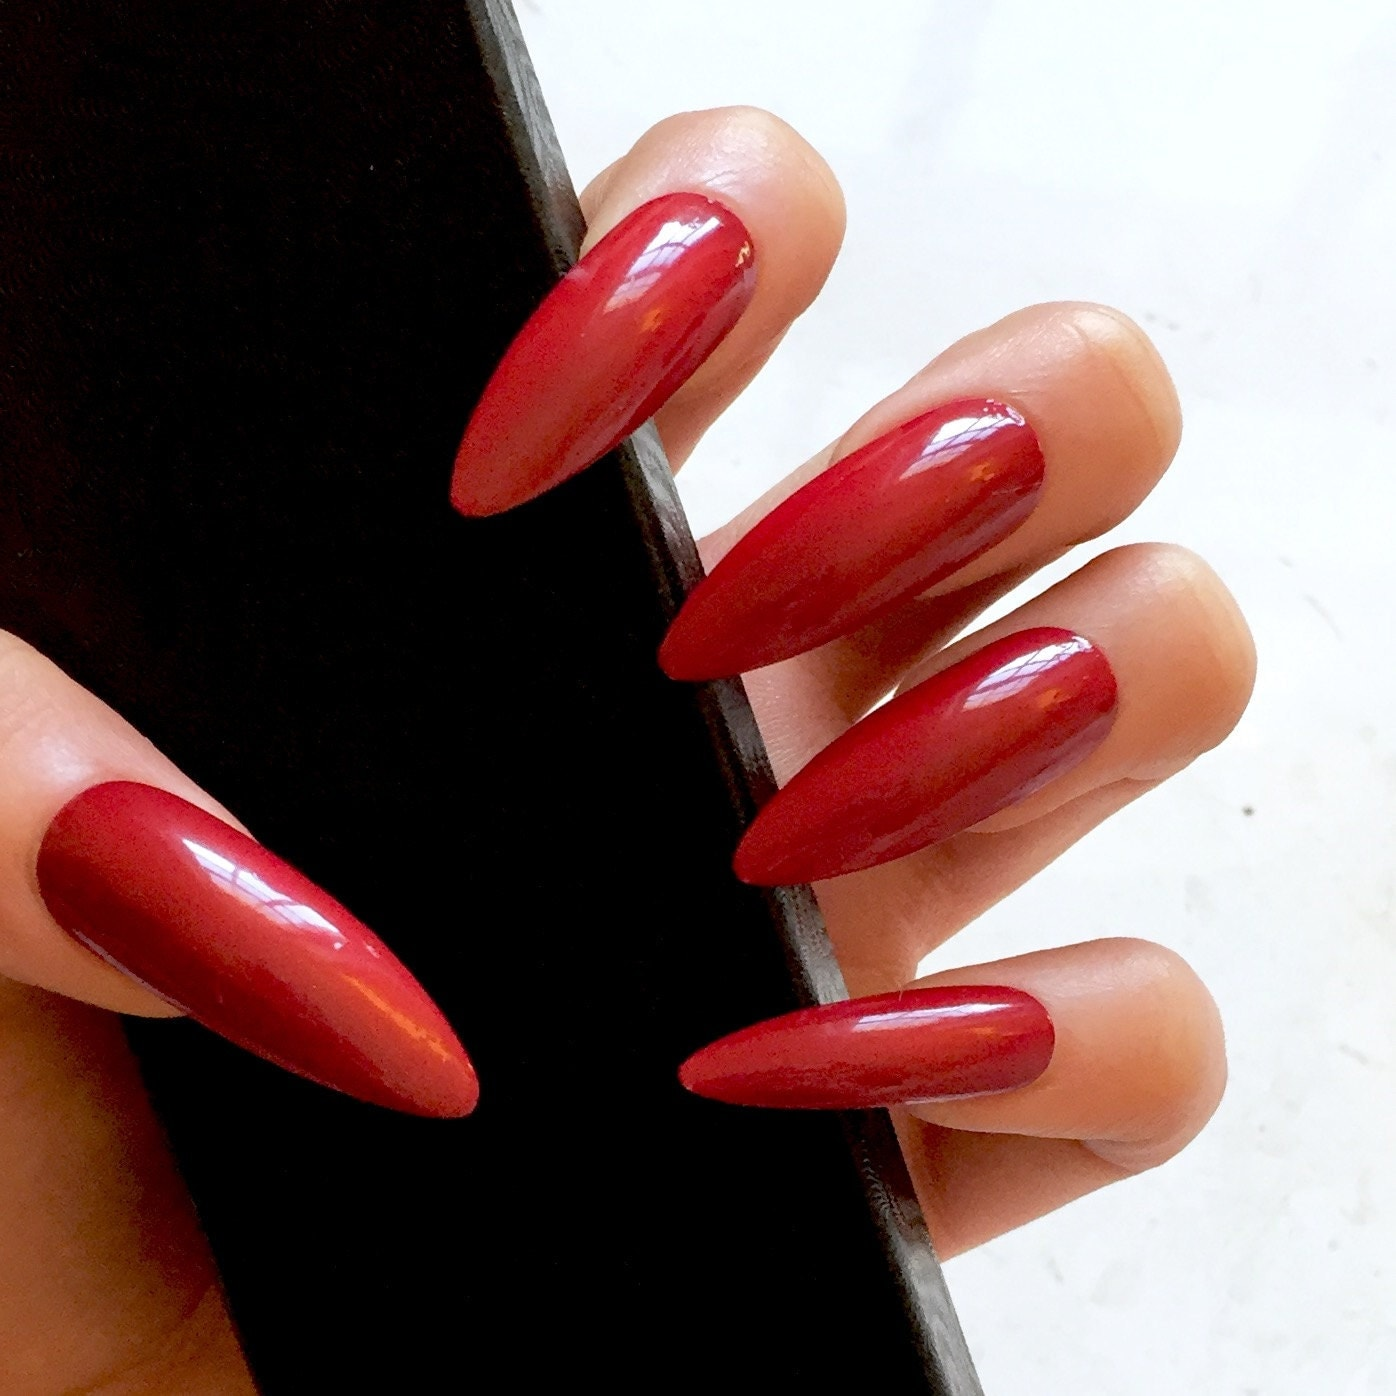 Red Stiletto Nails: XL Red Stiletto Fake Nails Kitten Claws Extra Long